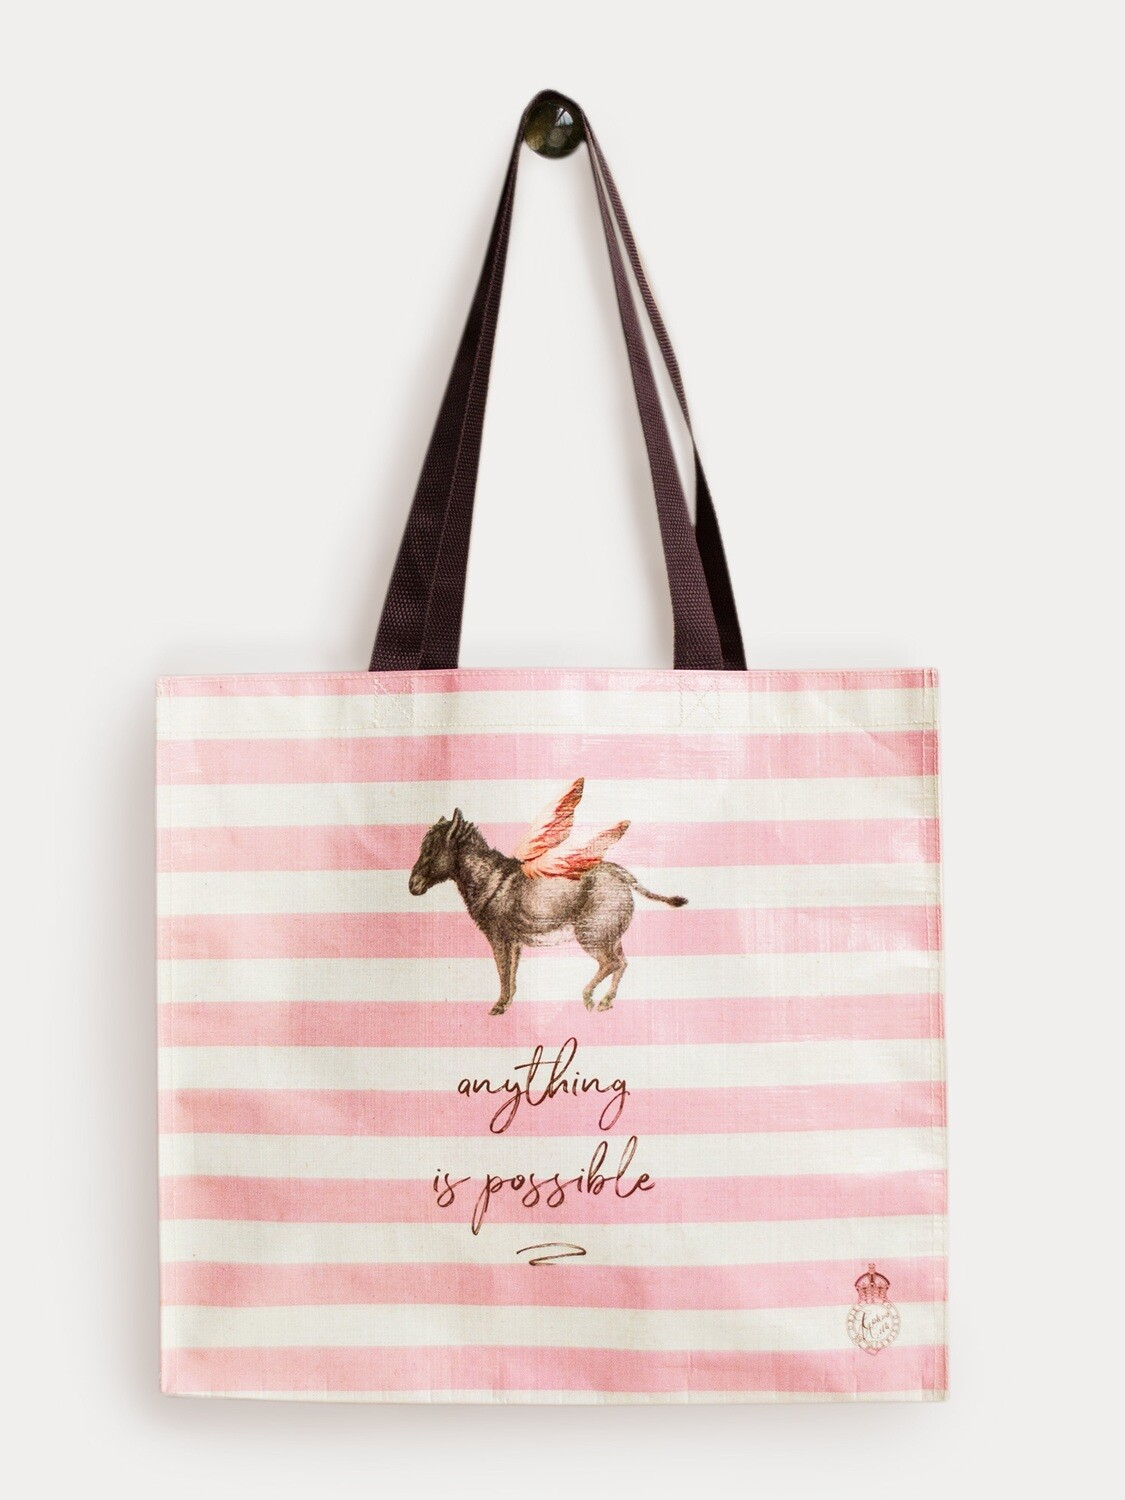 Donkey Anything is Possible Market Tote